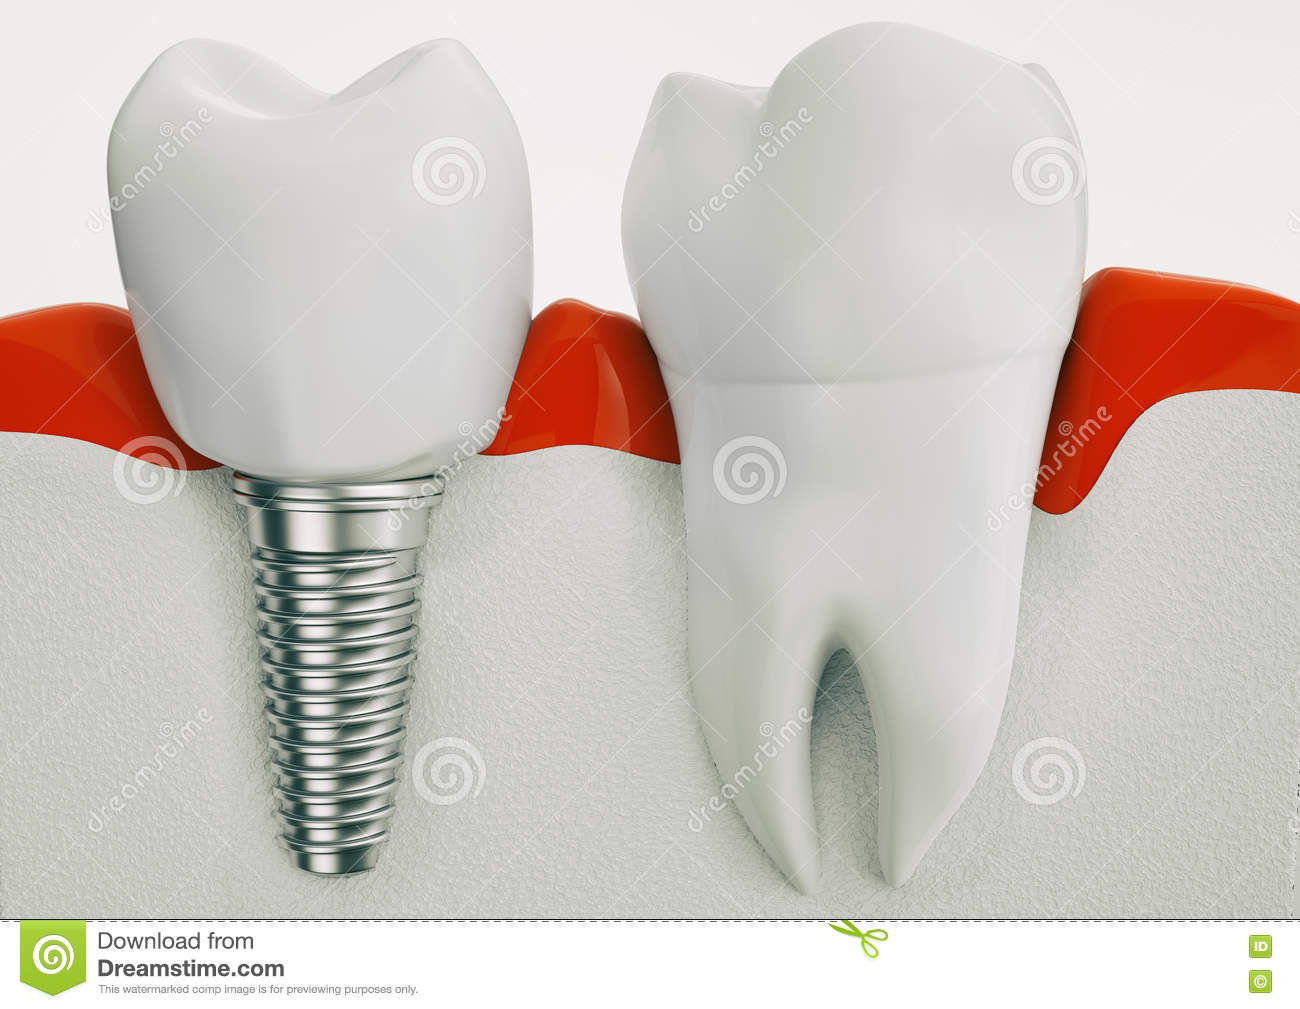 Anatomy of healthy teeth and dental implant in jaw bone - 3d rendering